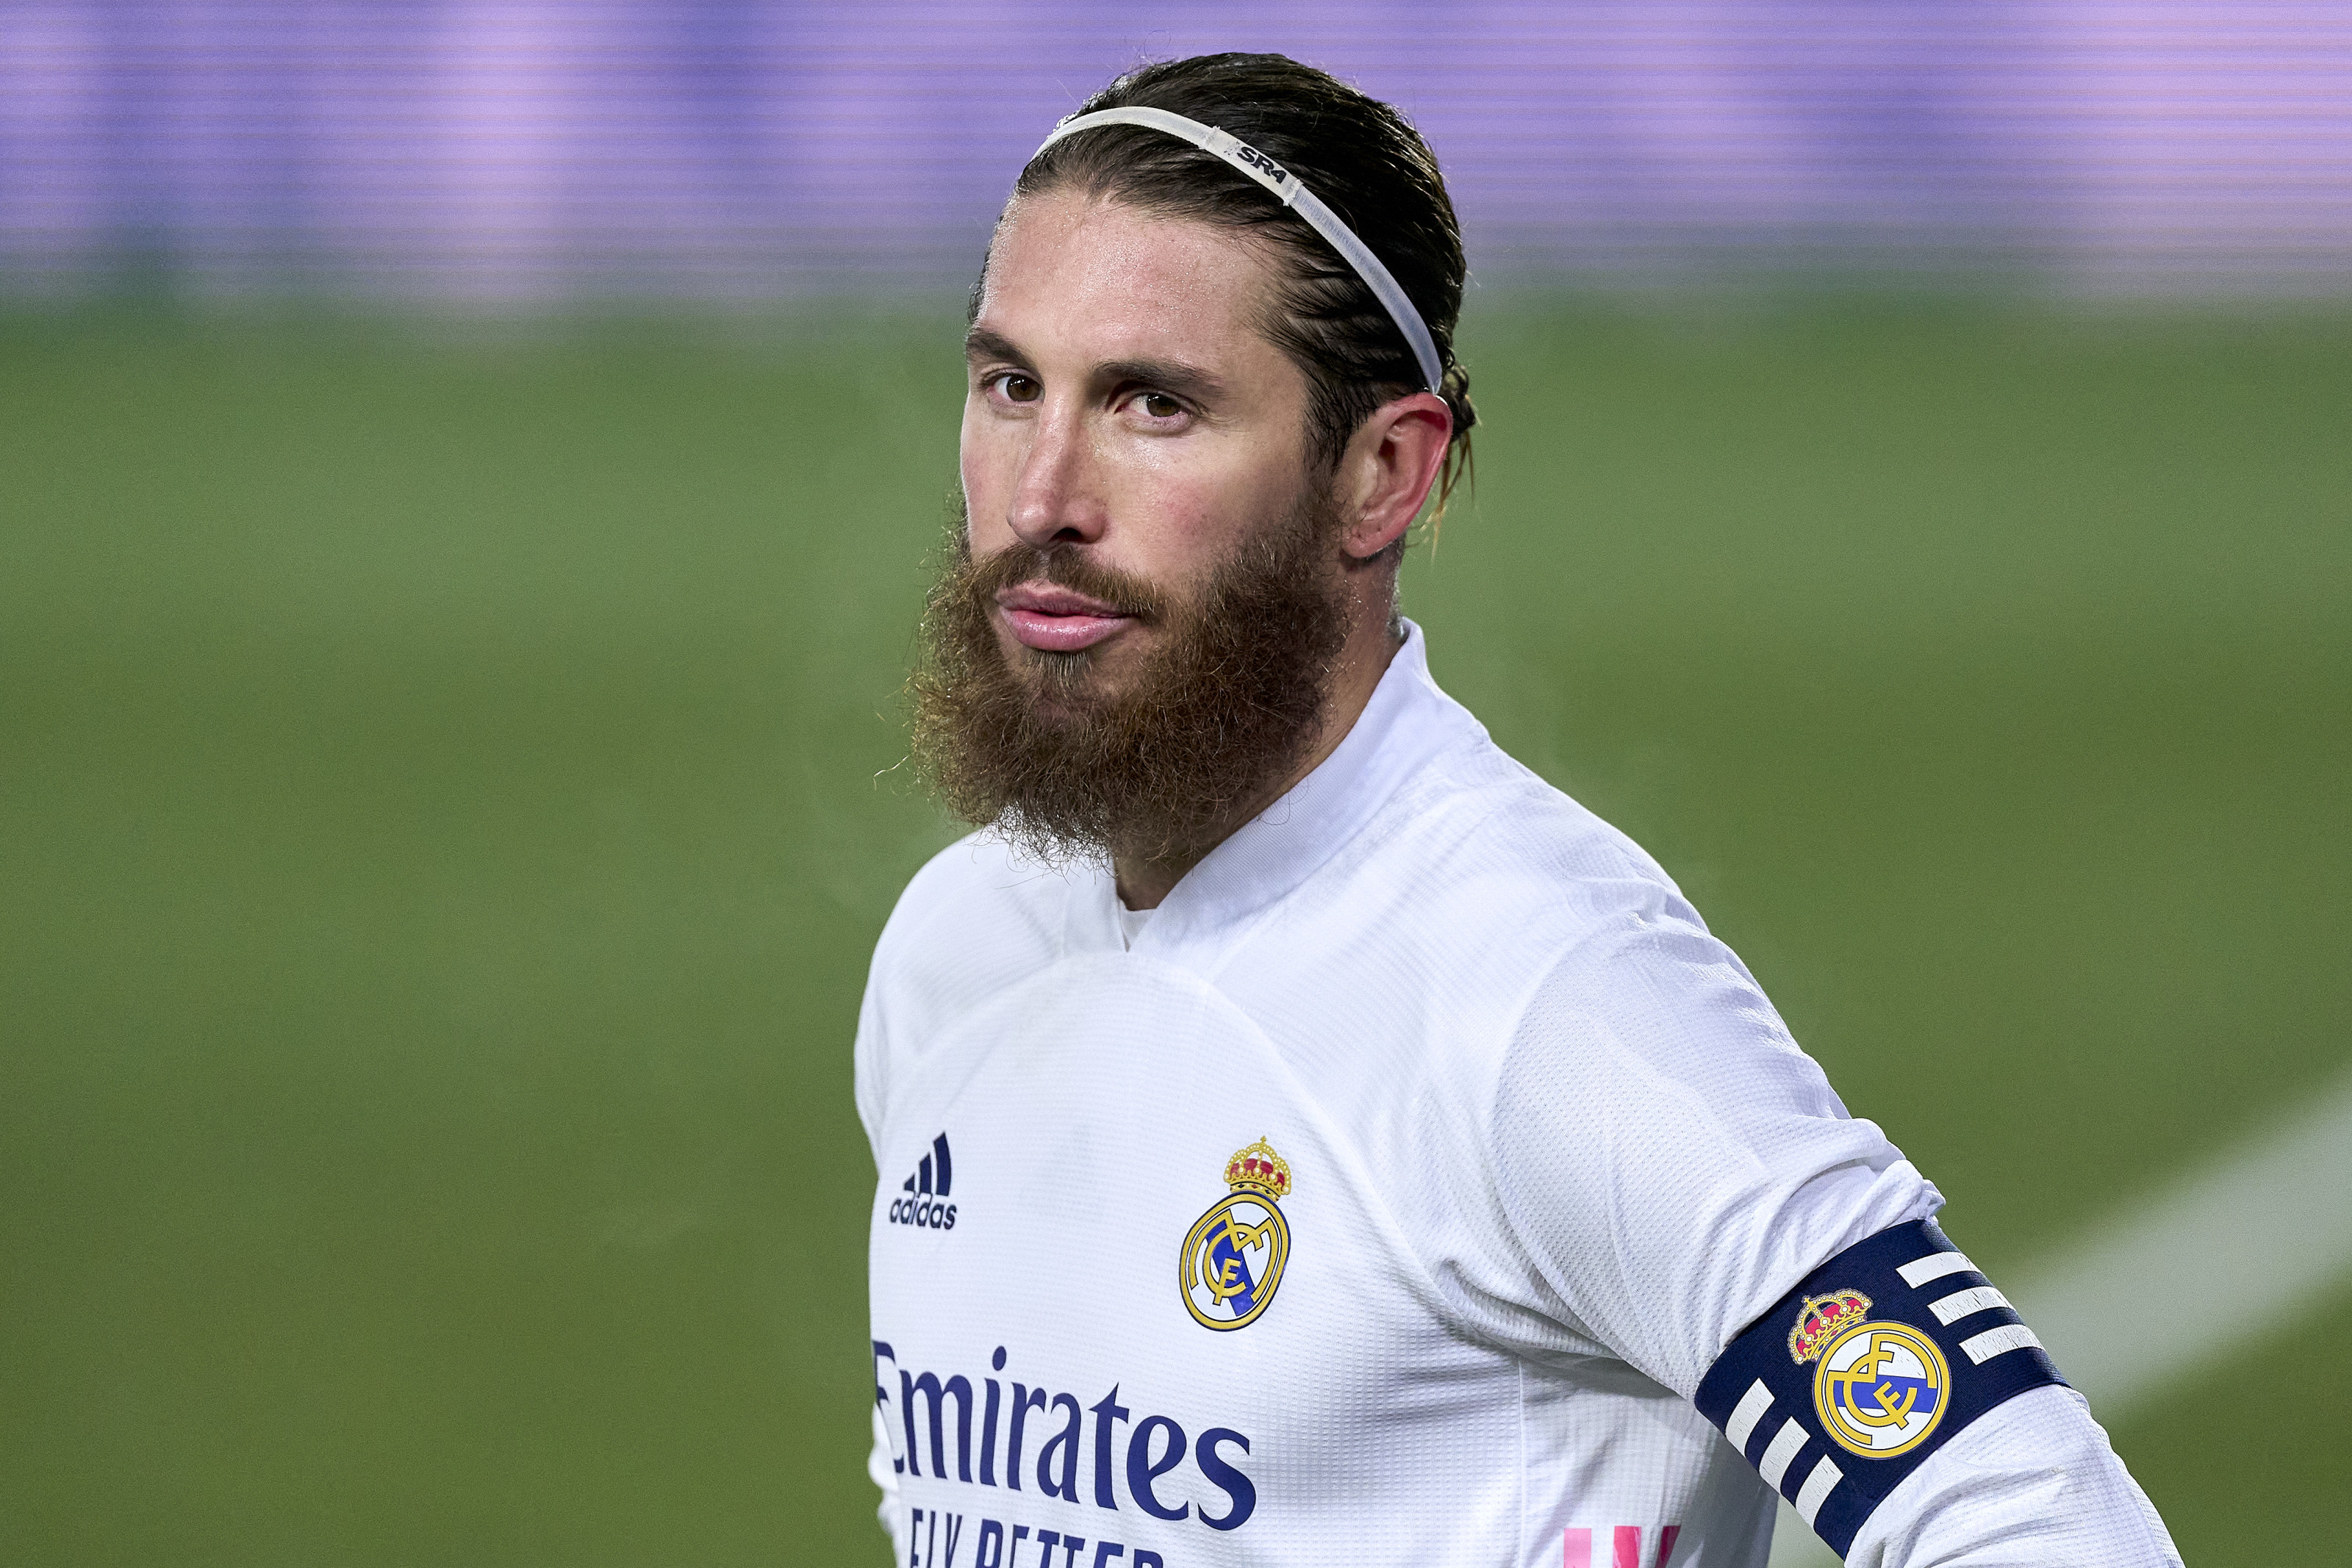 Real Madrid captain, Sergio Ramos tests positive for Coronavirus ahead of Champions League second leg against Liverpool